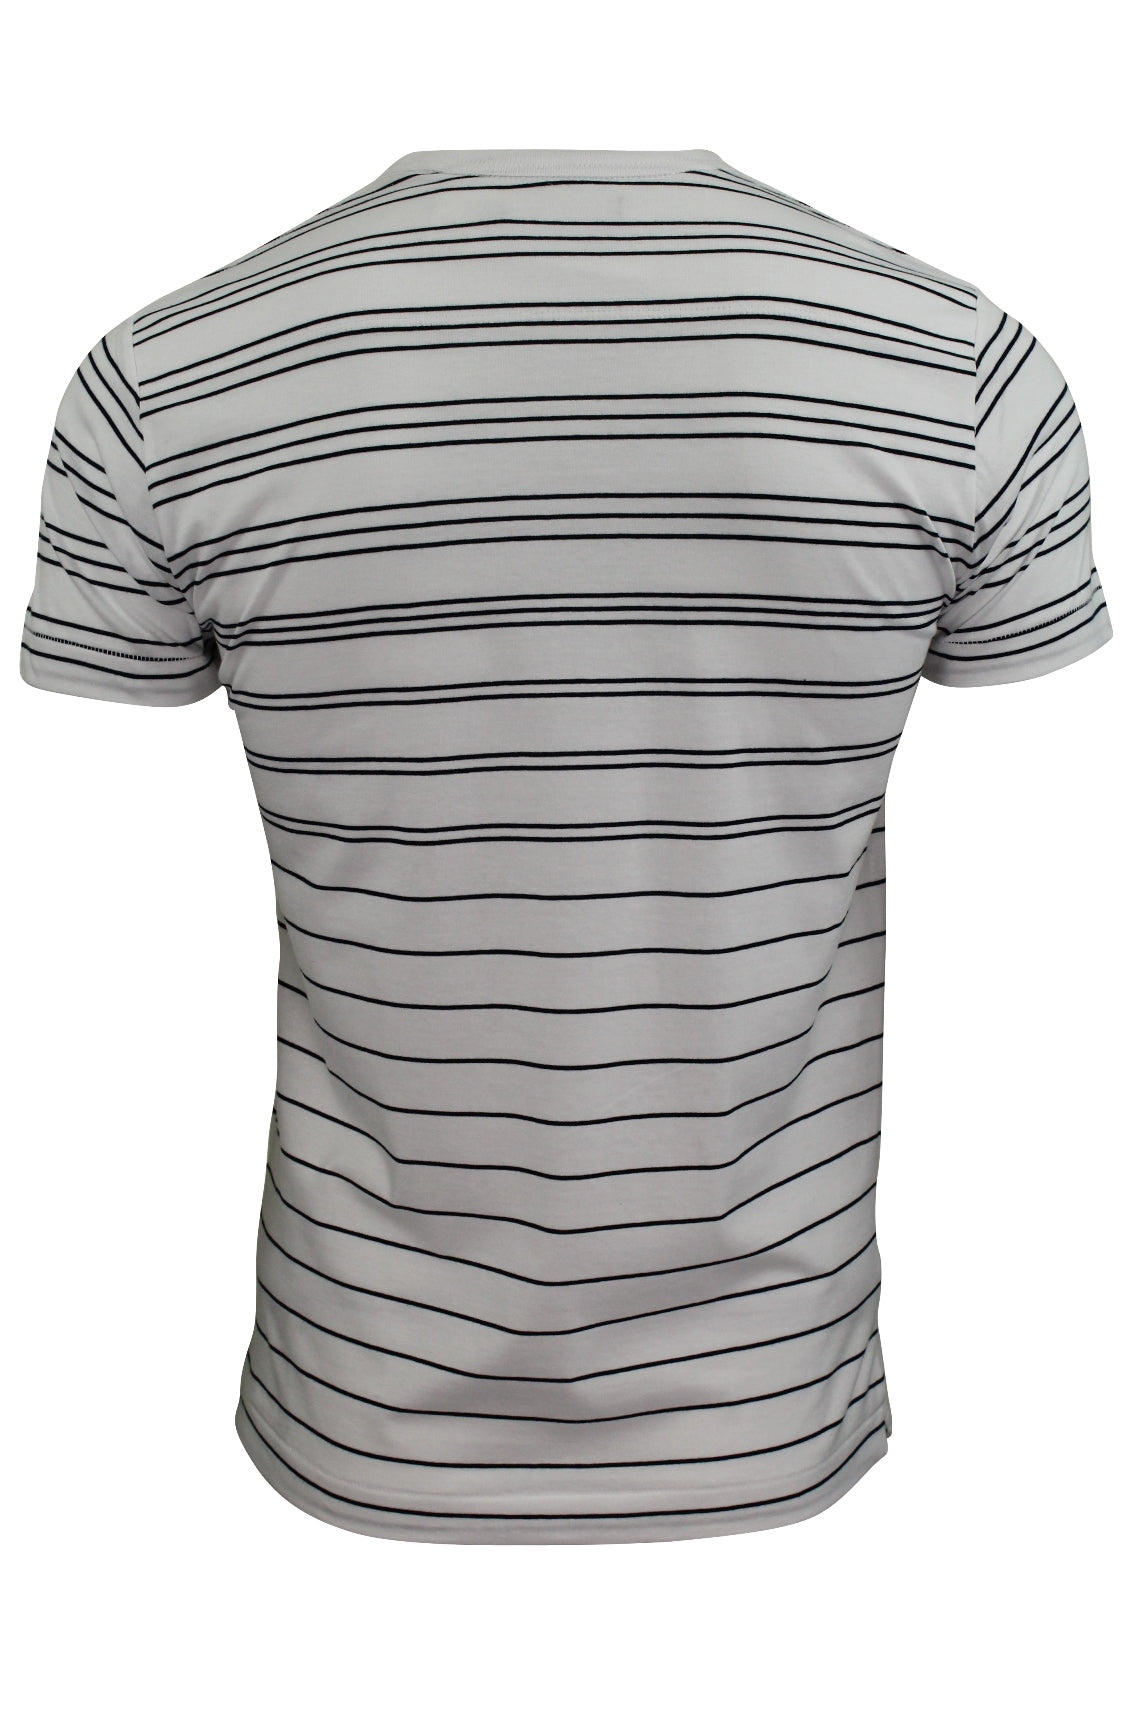 Mens T-Shirt by FCUK/French Connection Summer Graded Stripe-3